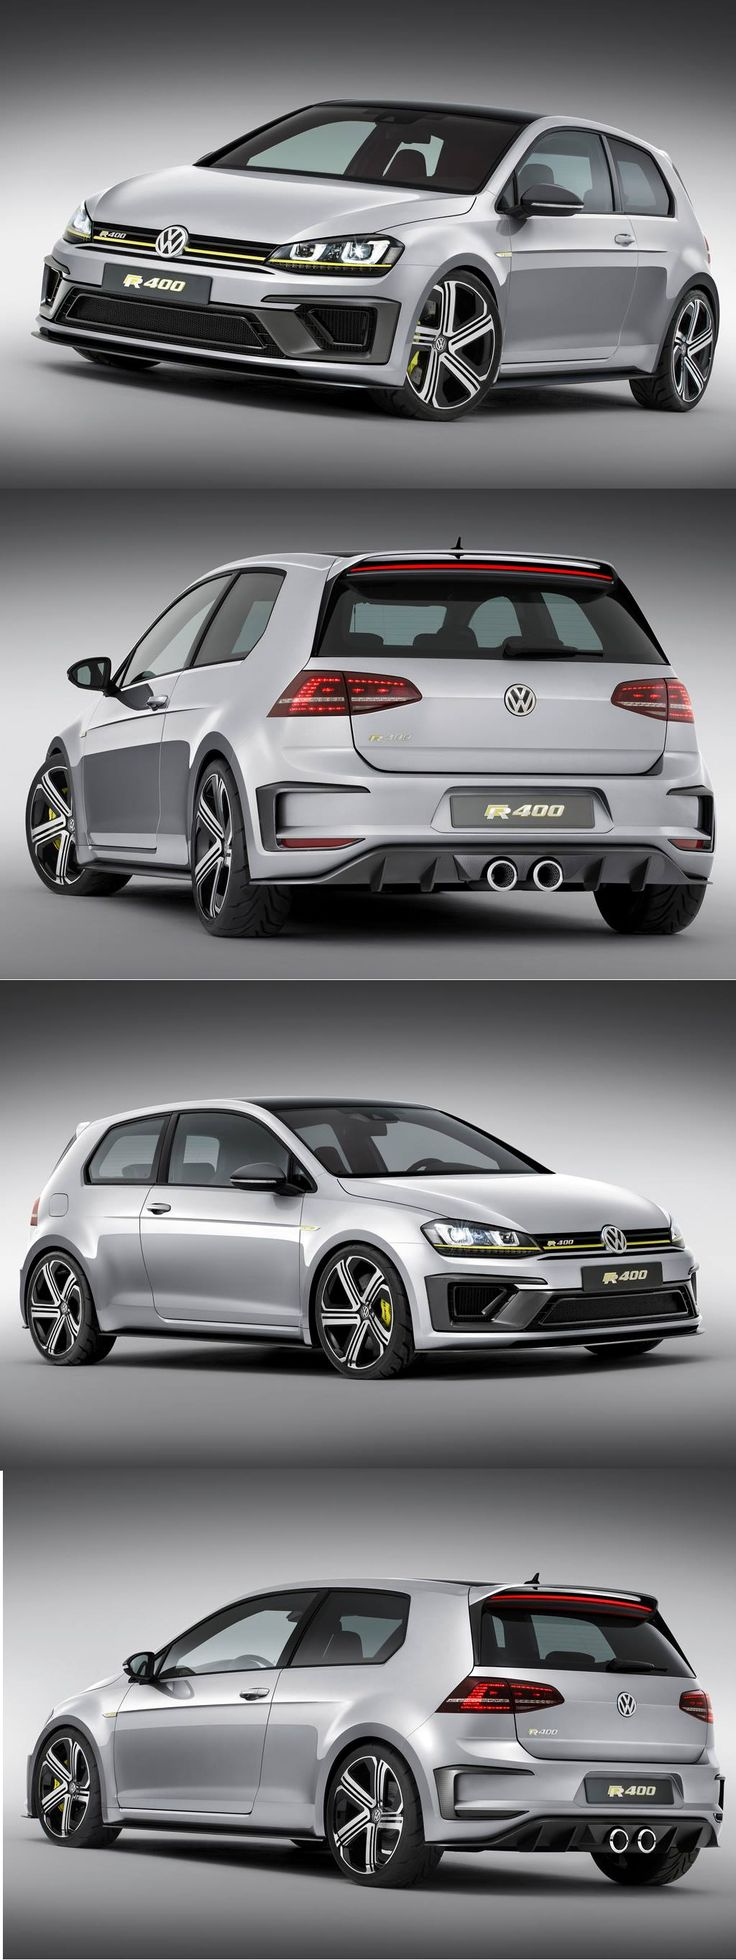 Vw s new golf r400 honestly an amazing car with a 2 0 litre engine it